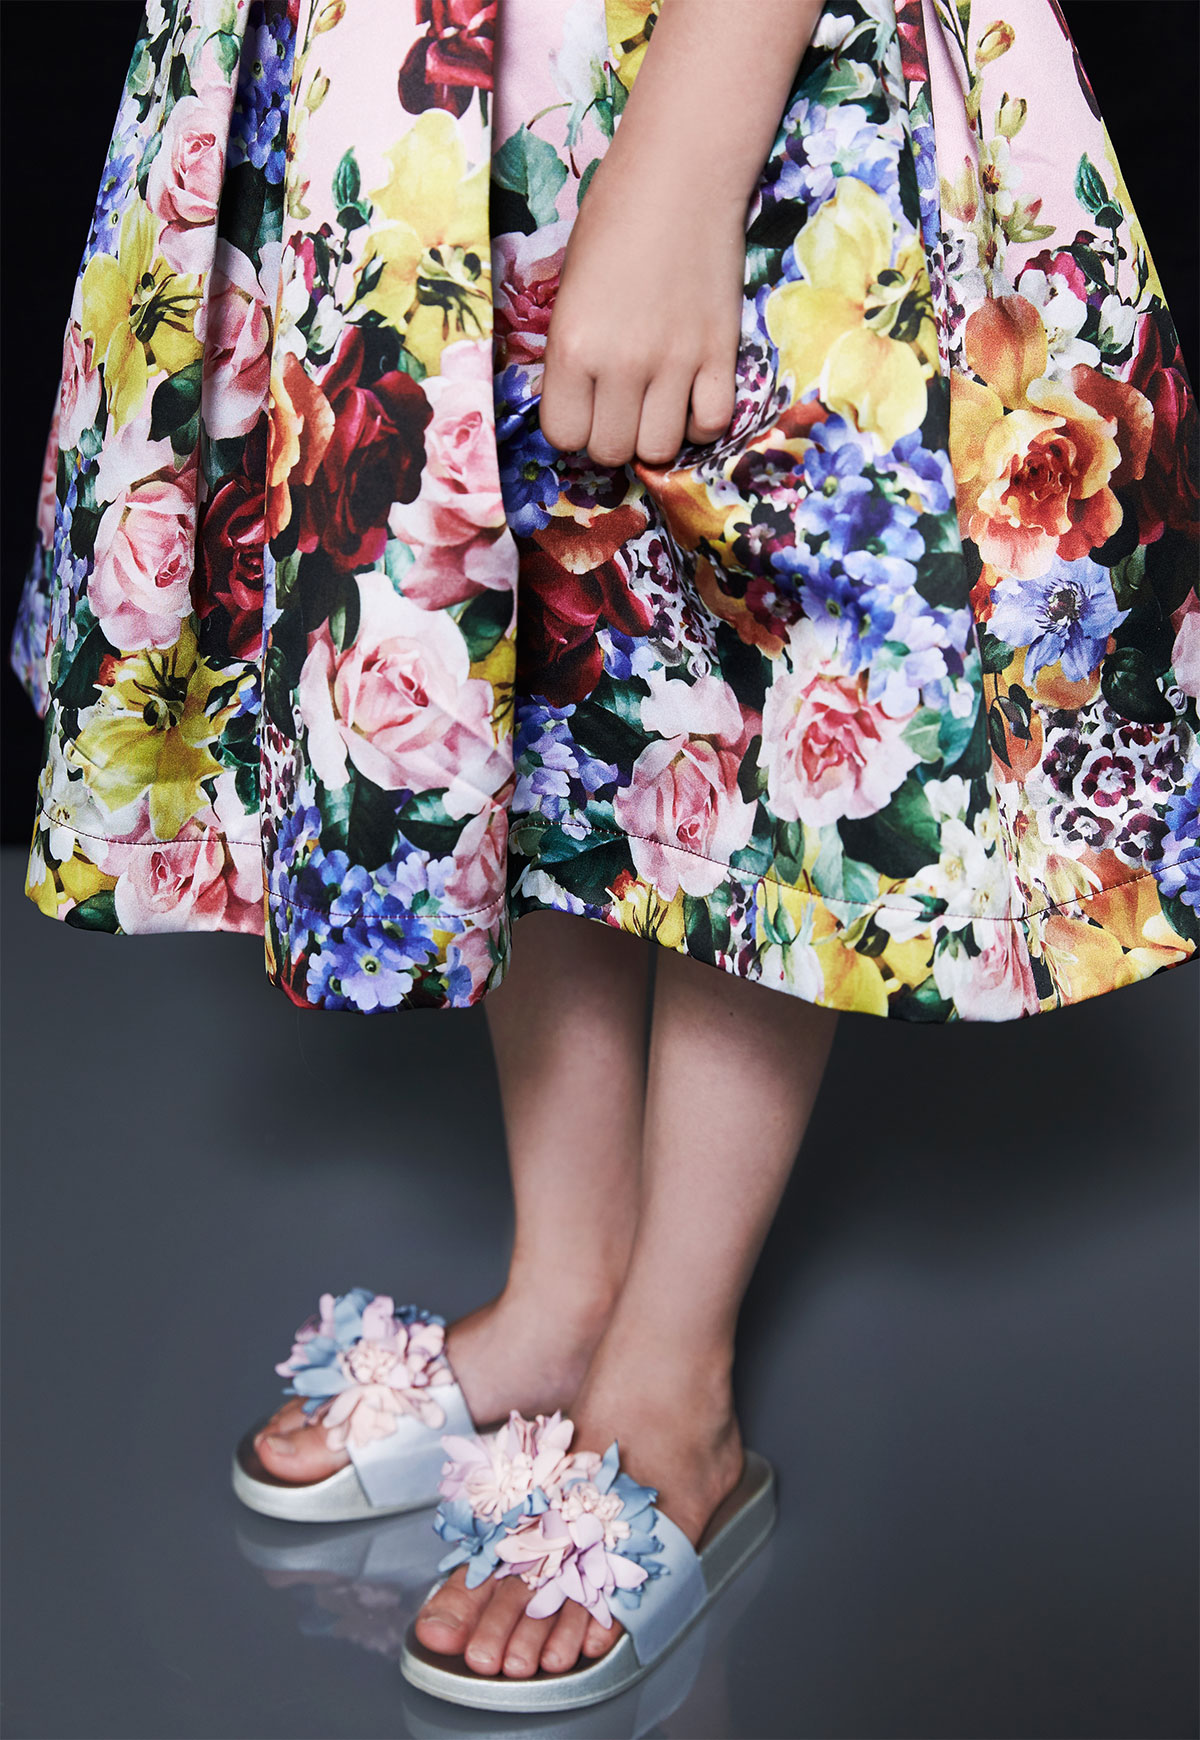 girl with flower dress